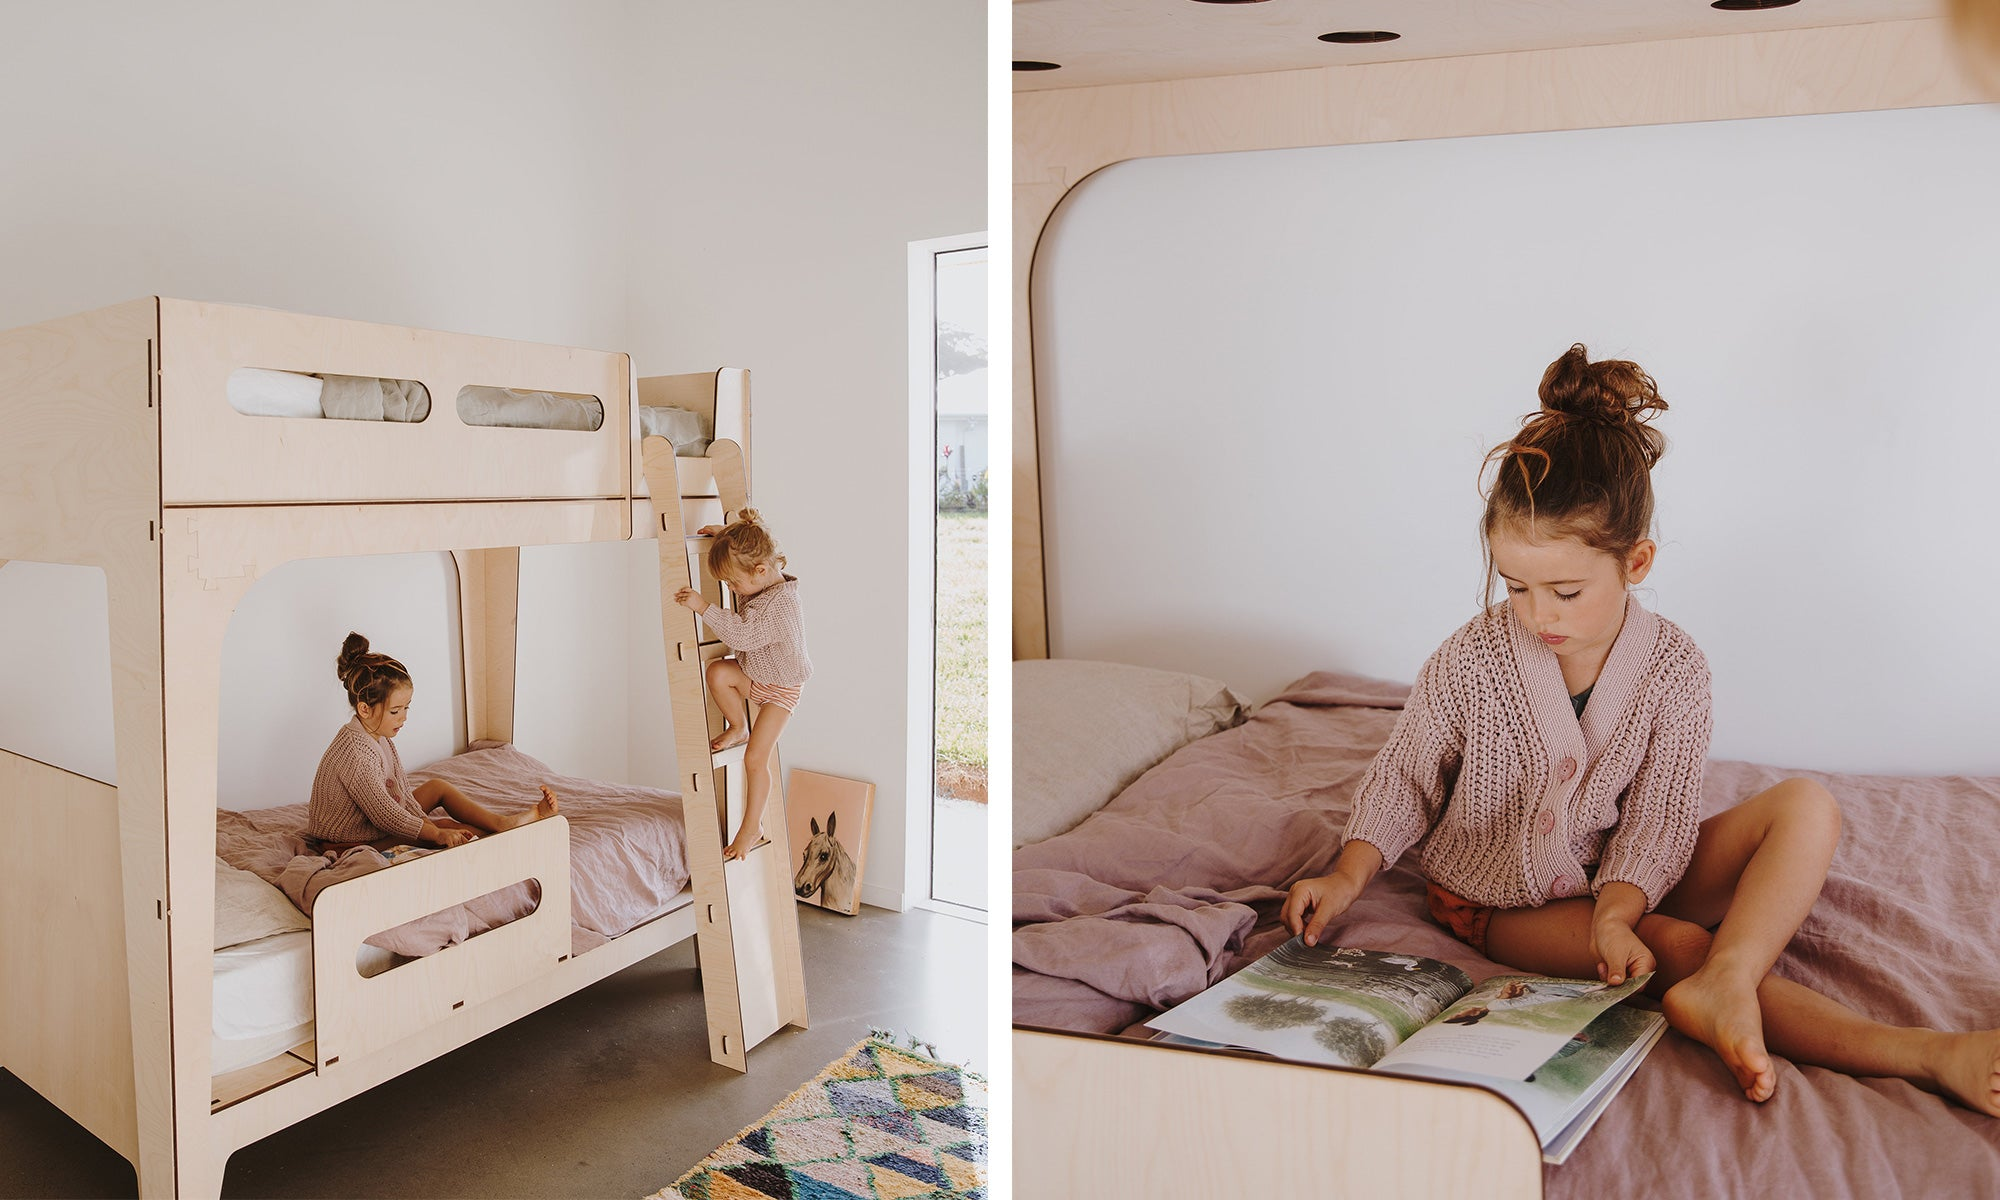 Modern Bunk Beds and Loft Beds for Small Space Living